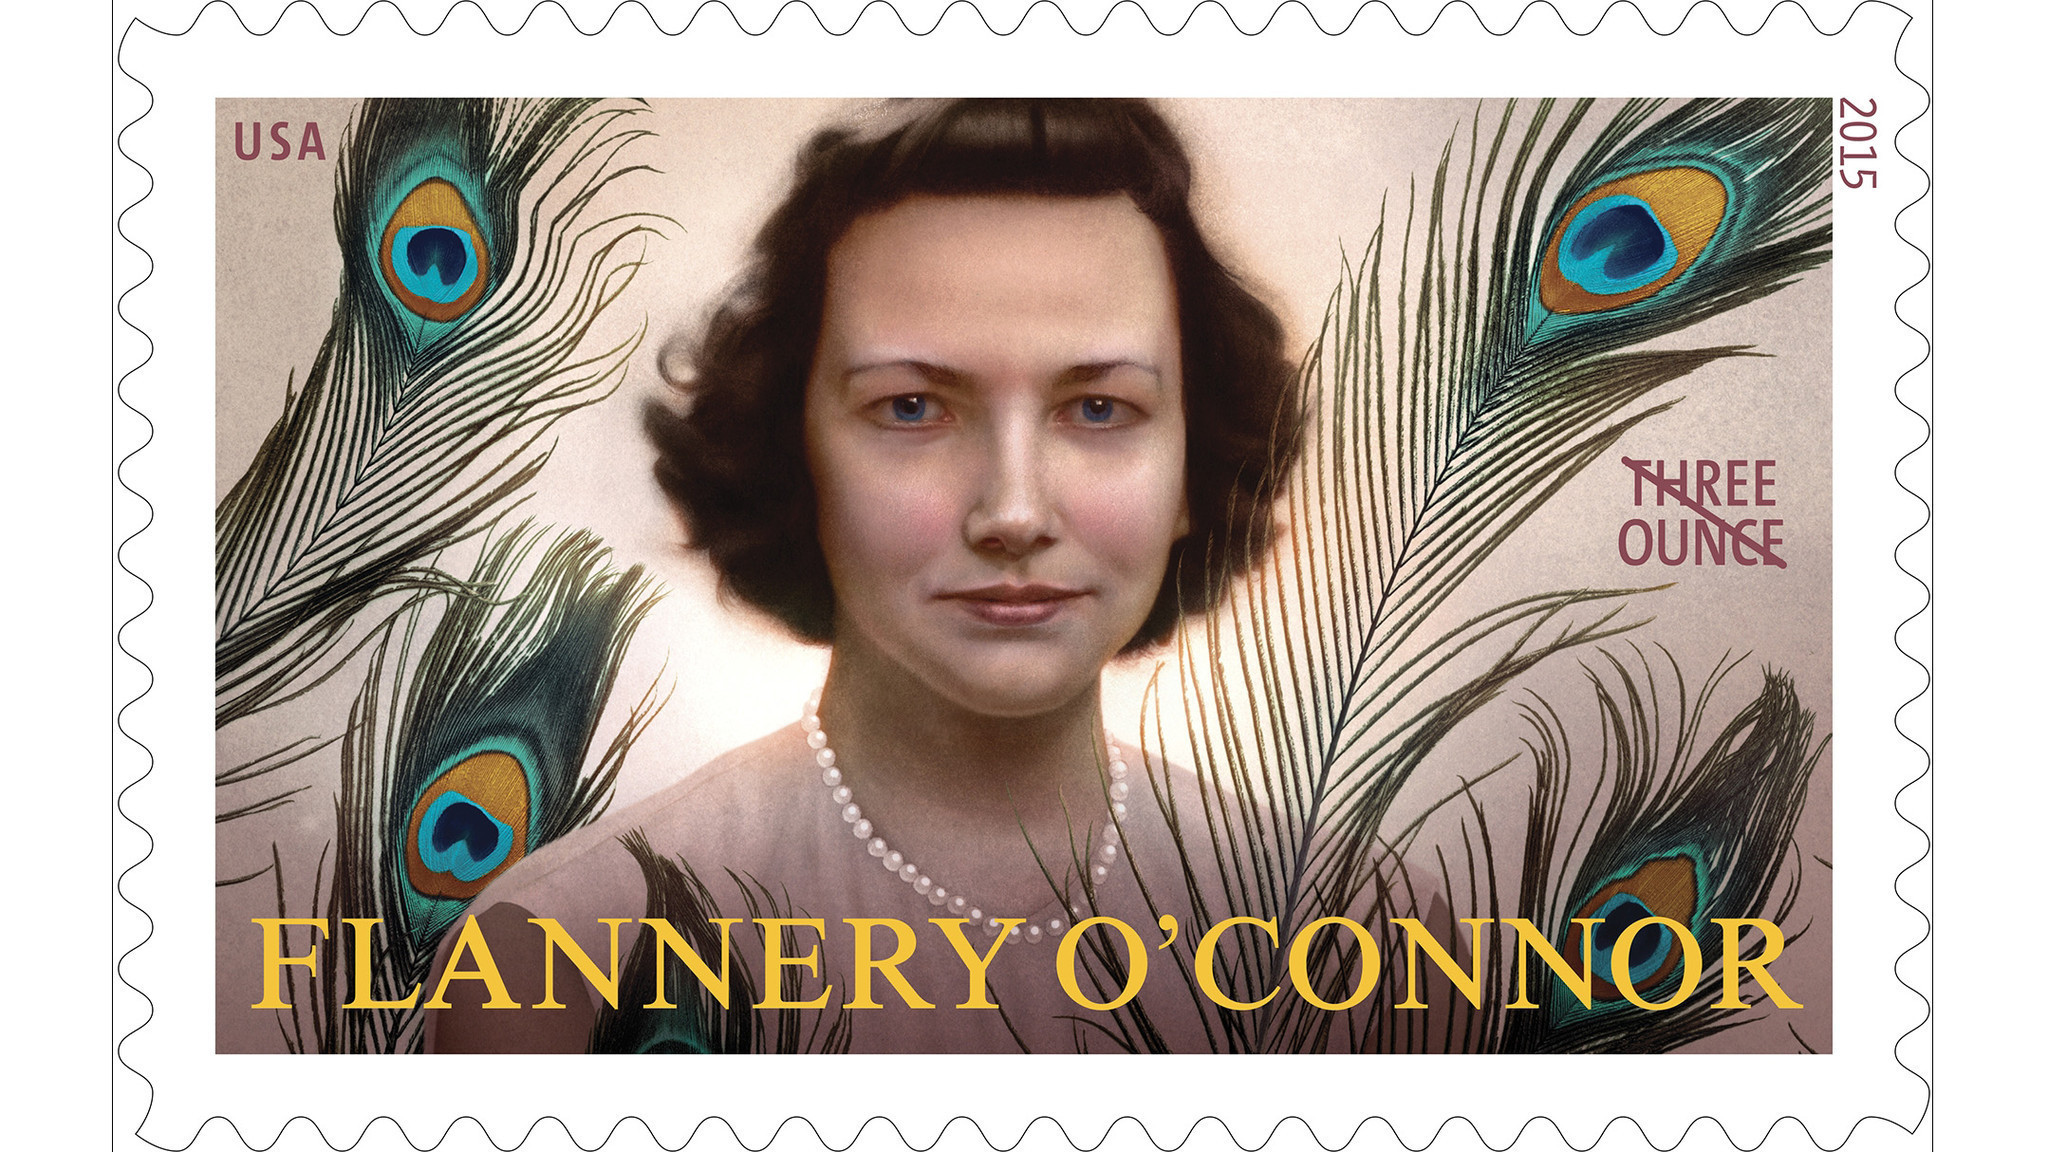 flannery o connor News about flannery o'connor commentary and archival information about flannery o'connor from the new york times.